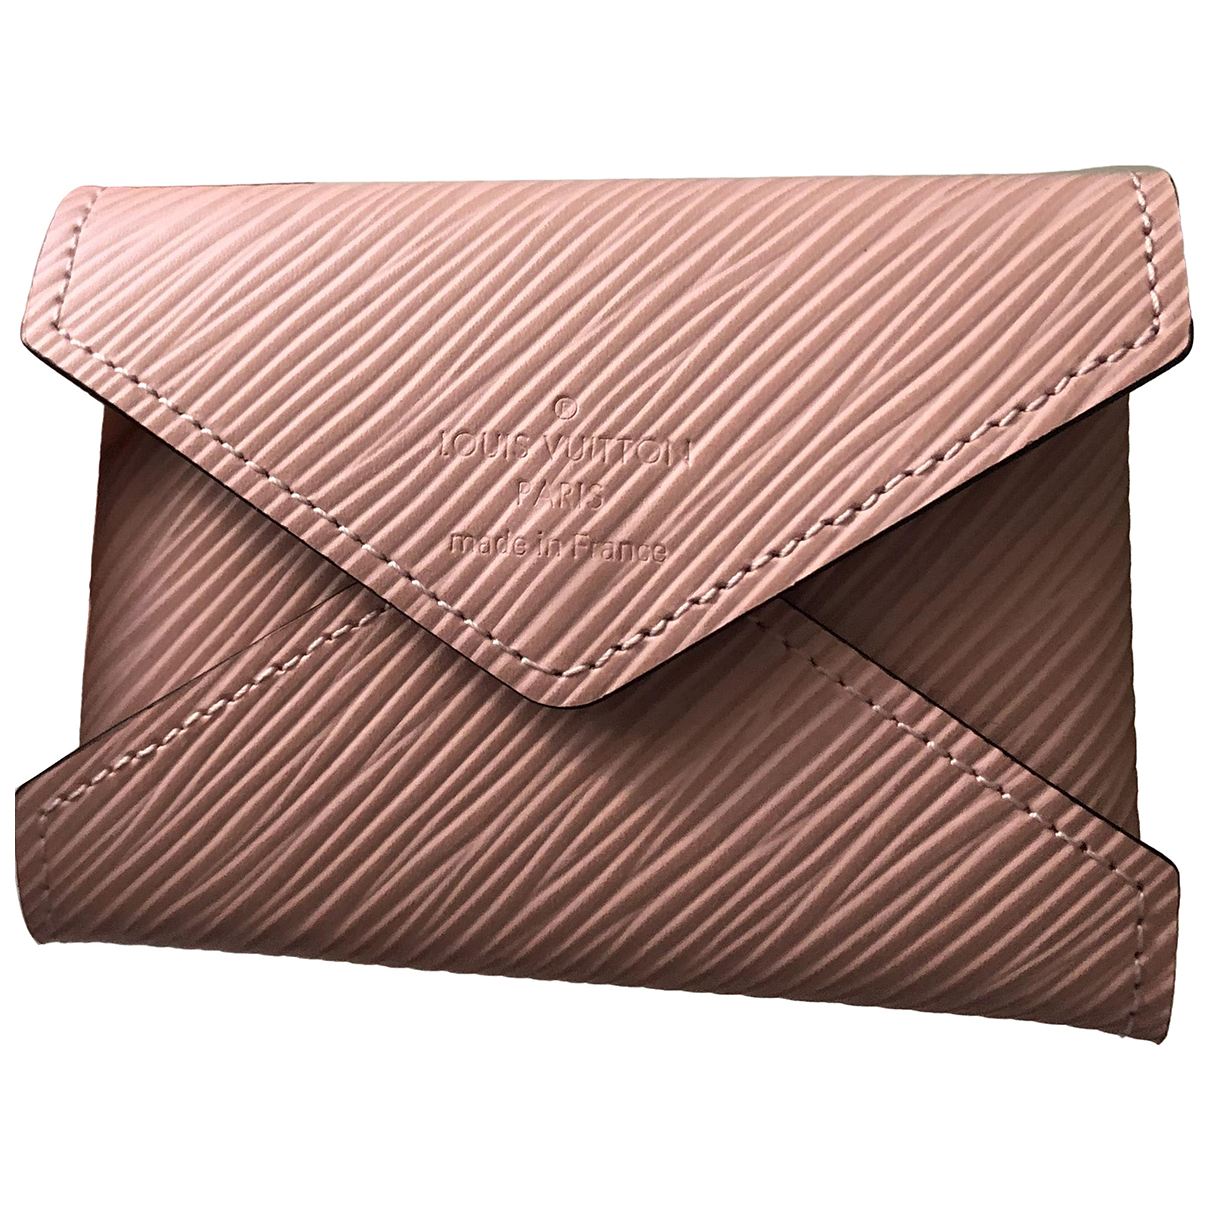 Louis Vuitton Kirigami Pink Leather Clutch bag for Women N